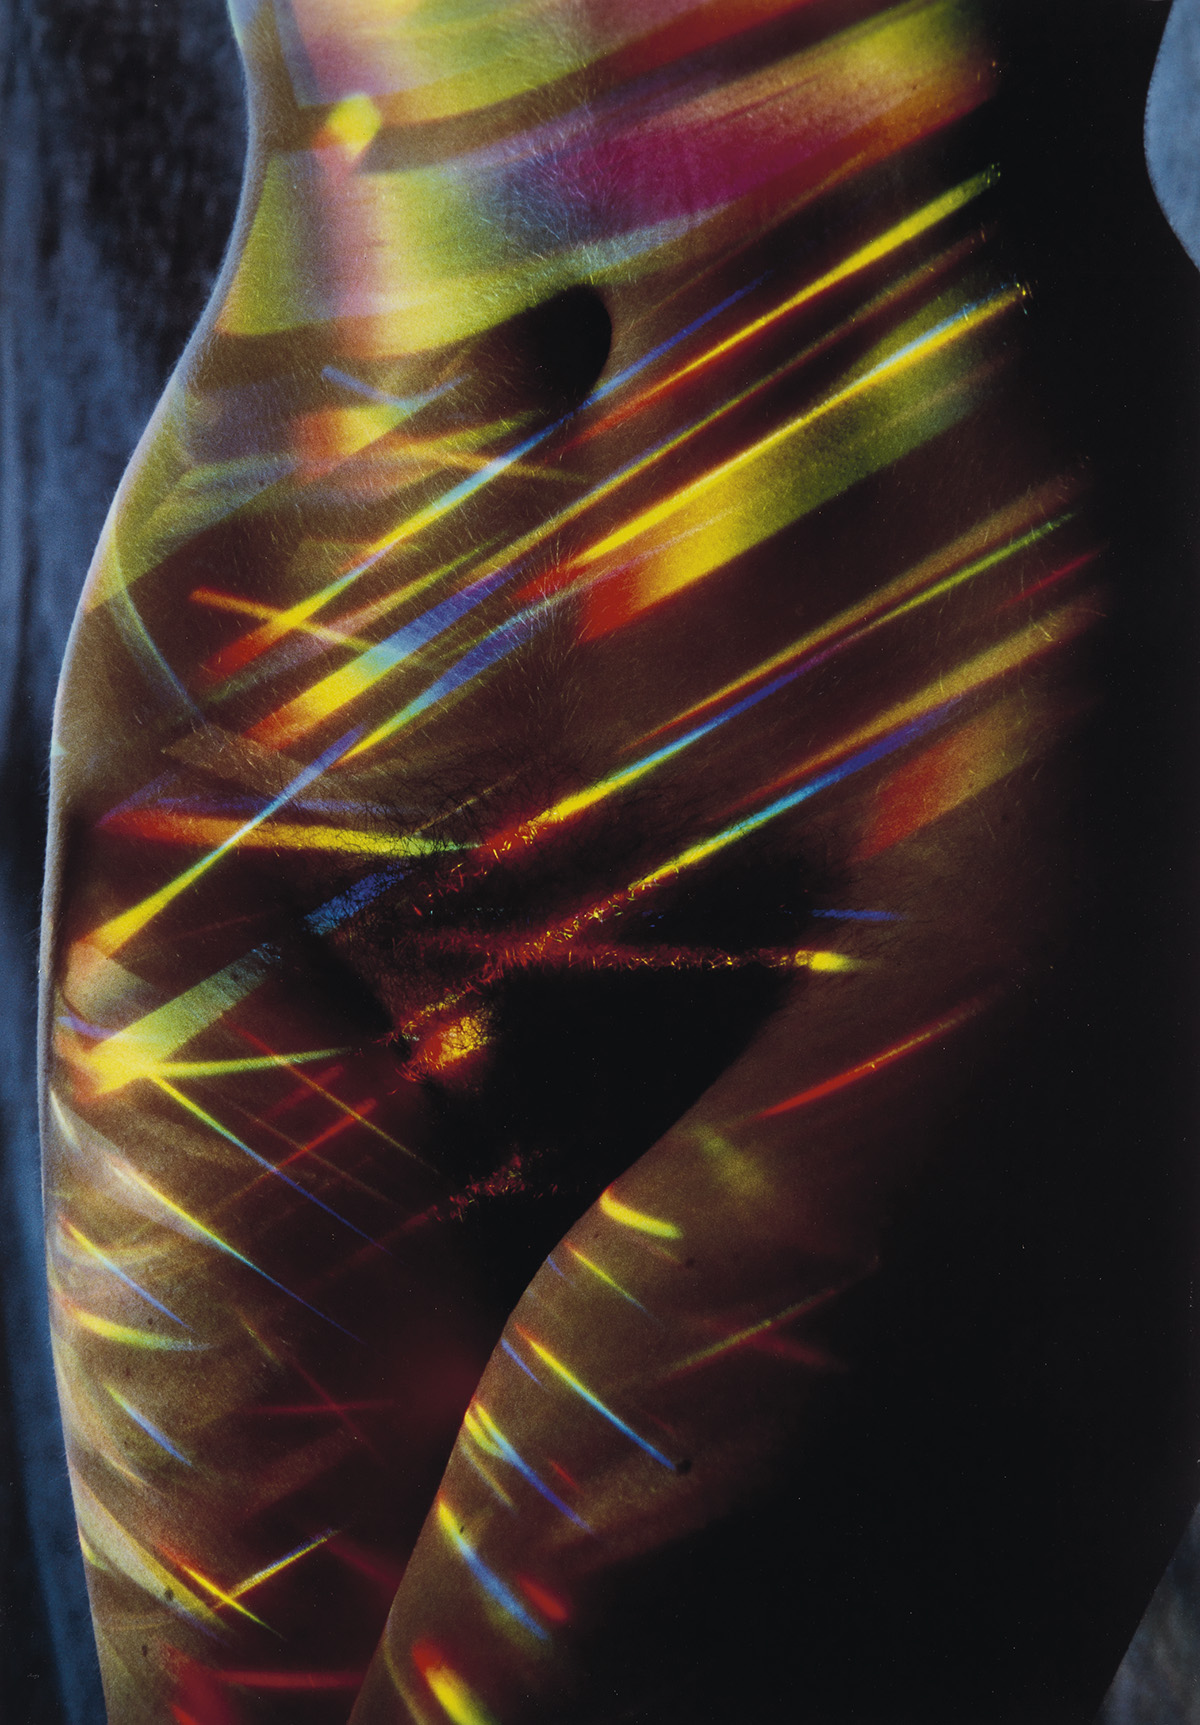 LUCIEN-CLERGUE-(1934-2014)-Nude-female-figure-overlaid-with-